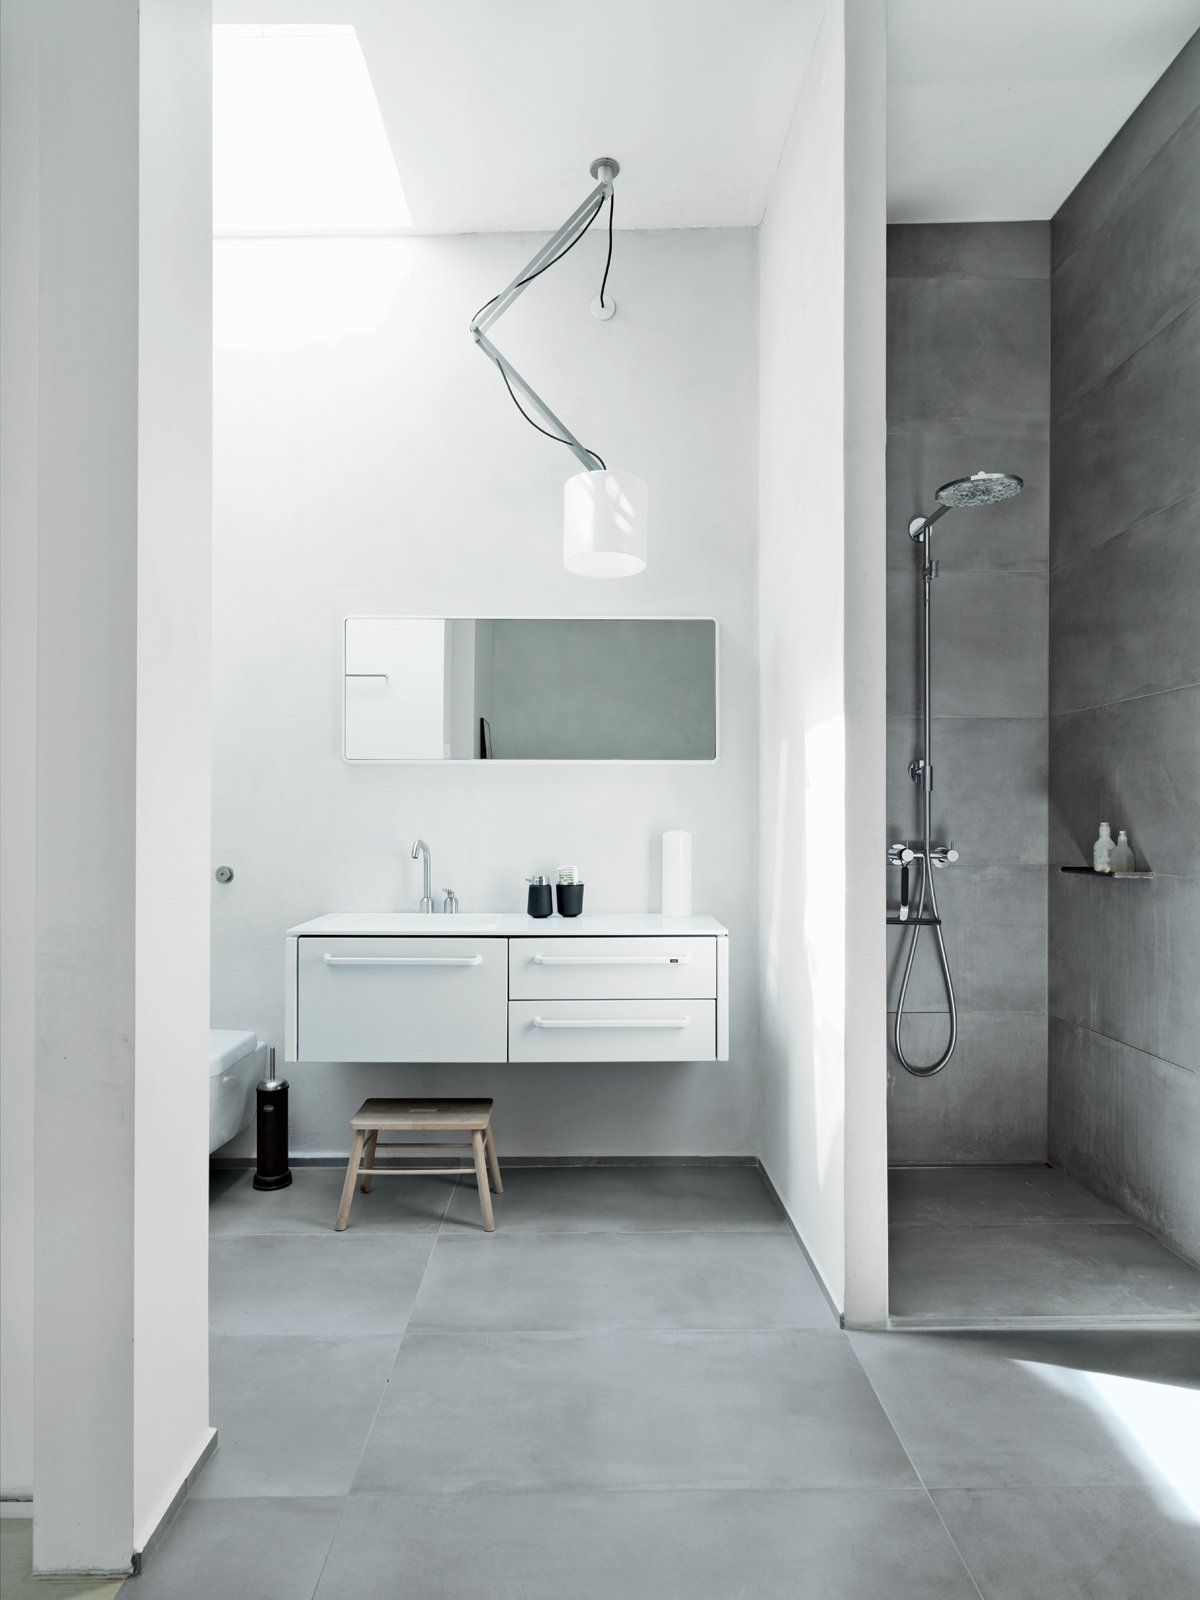 The family shares one main bathroom, which is outfitted with Vipp's new line of products: 982 bath furniture, a 906 faucet, and a 992 mirror. The shower sports a Raindance Connect showerhead by Hansgrohe, and there is a wall-mounted toilet by Villeroy & Boch. The Nomad light fixture is from Modular Lighting Instruments, and the floors are topped with ceramic tiles by LaFaenza.  Storage by Dwell from Converted Loft Fit for a Modern Family in Copenhagen